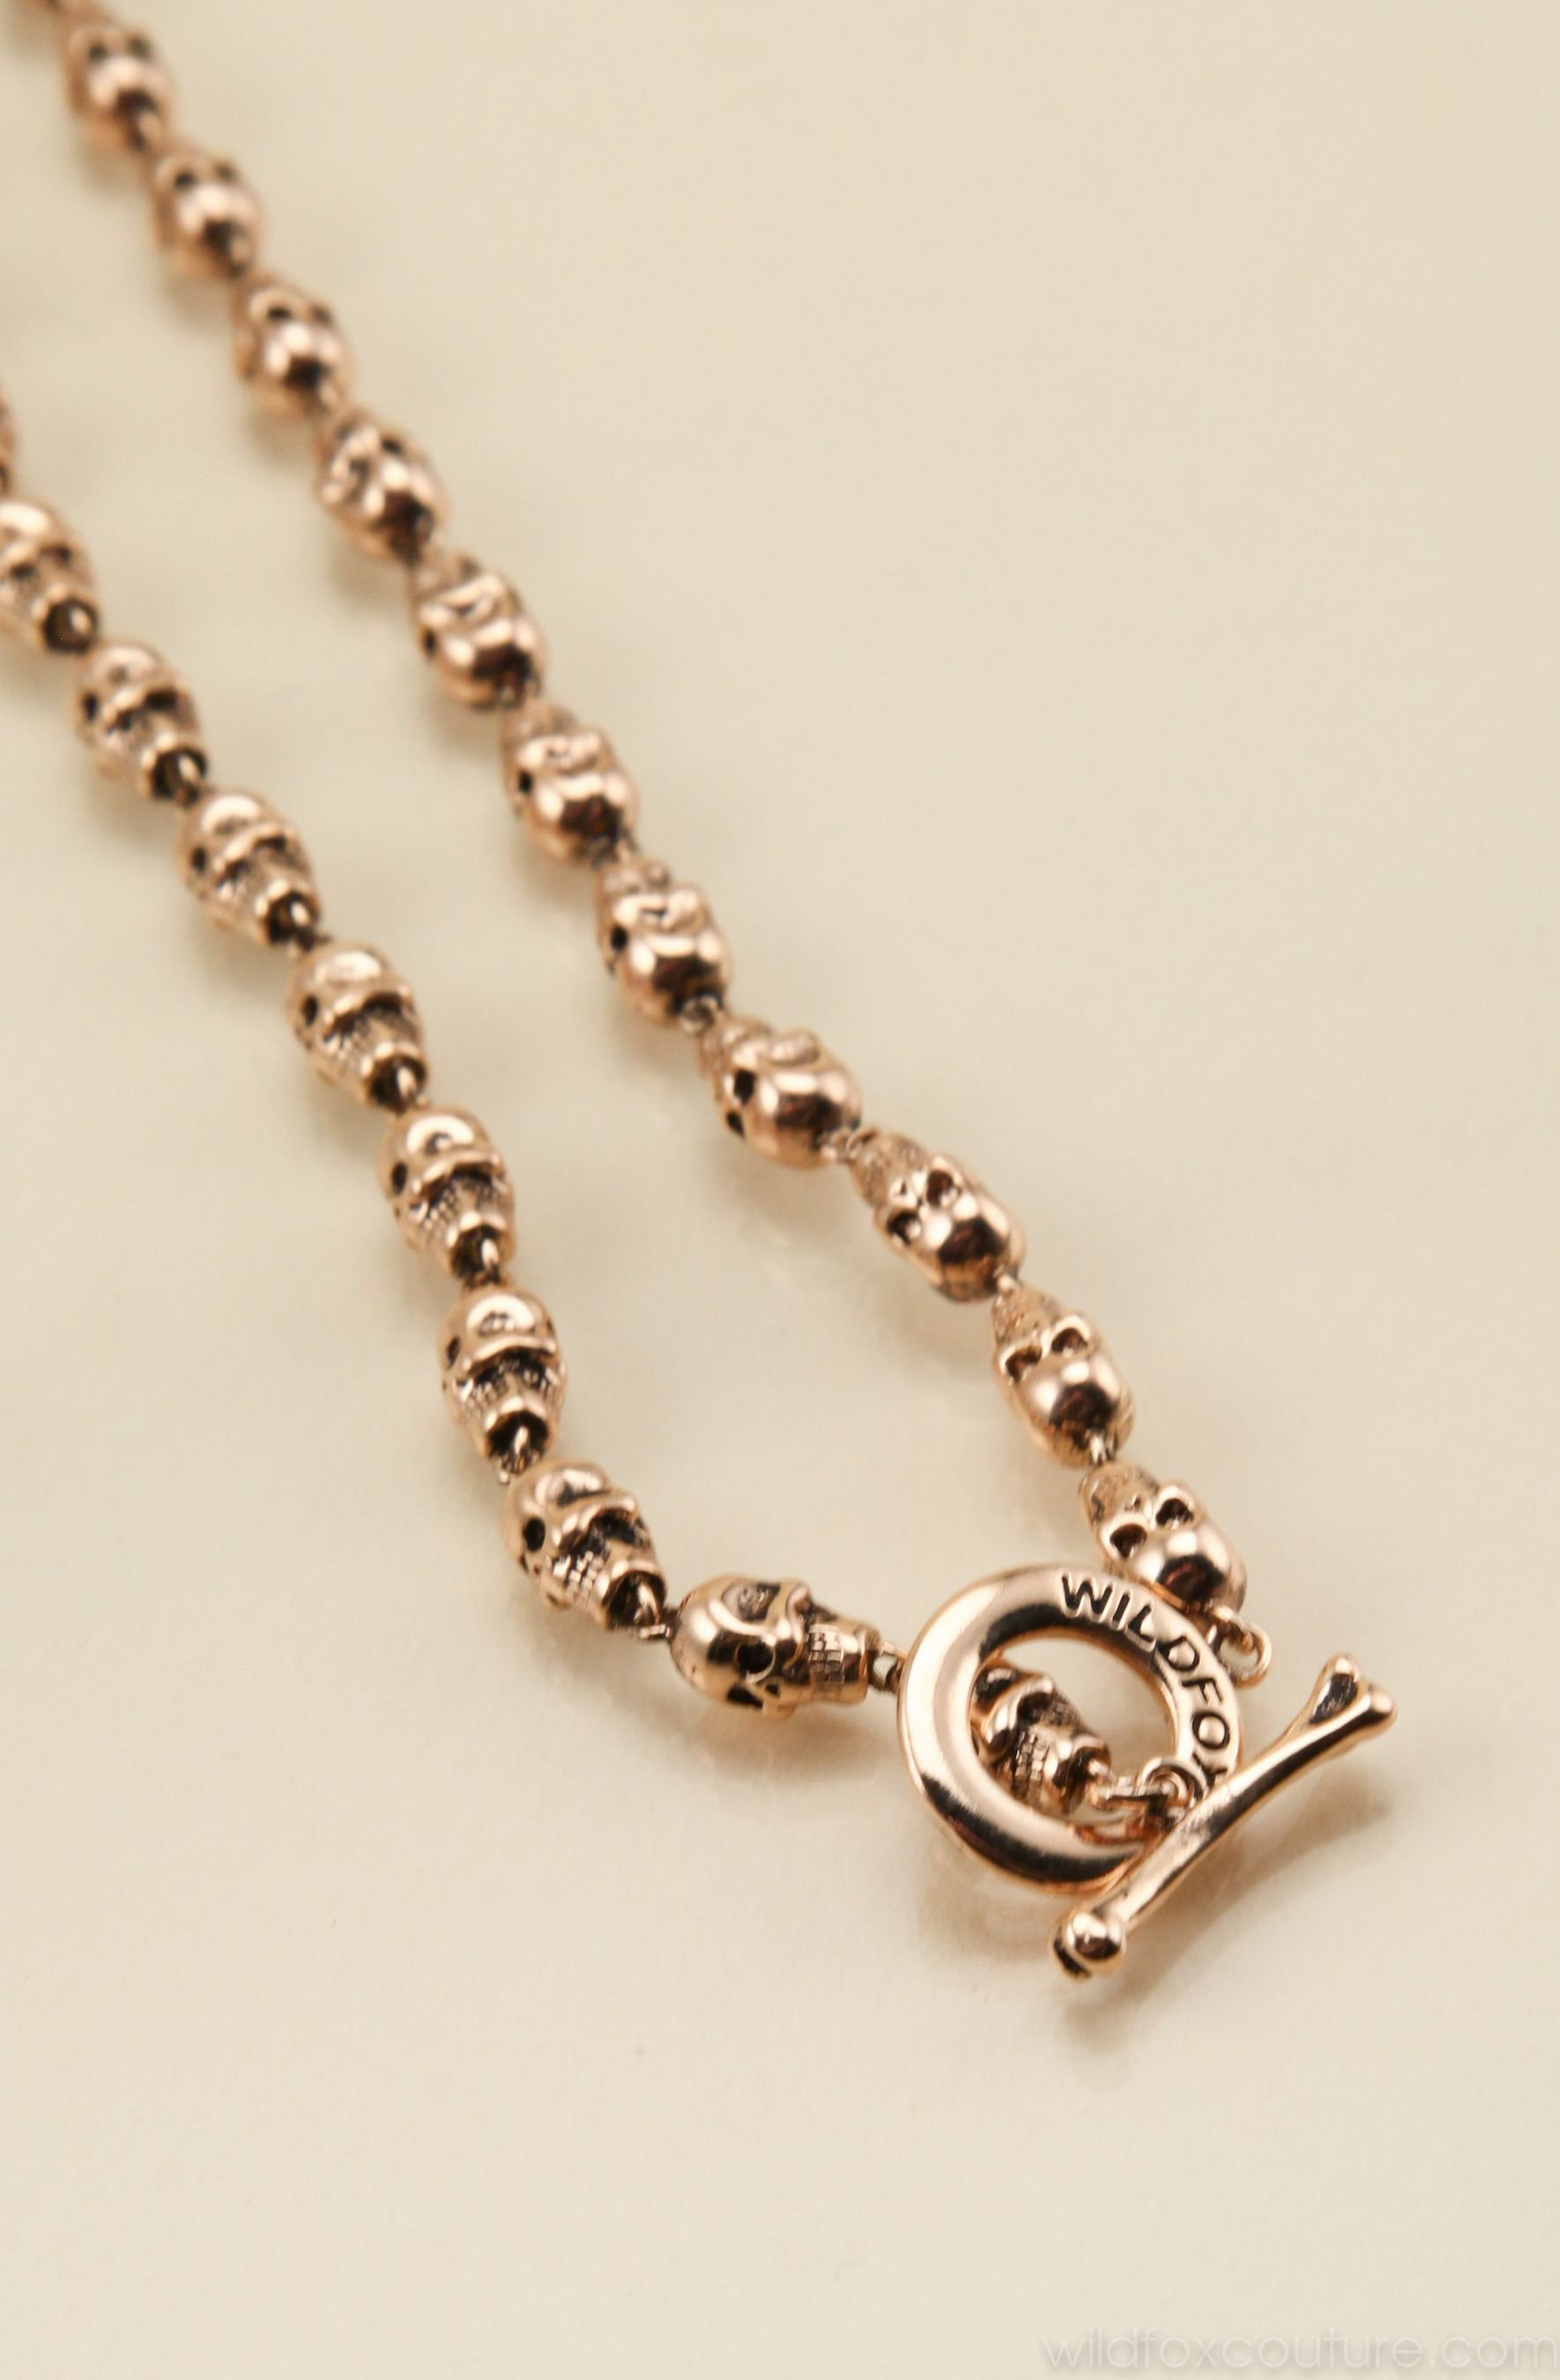 ROSE GOLD MINI SKULL NECKLACE at Wildfox Couture in RGLD